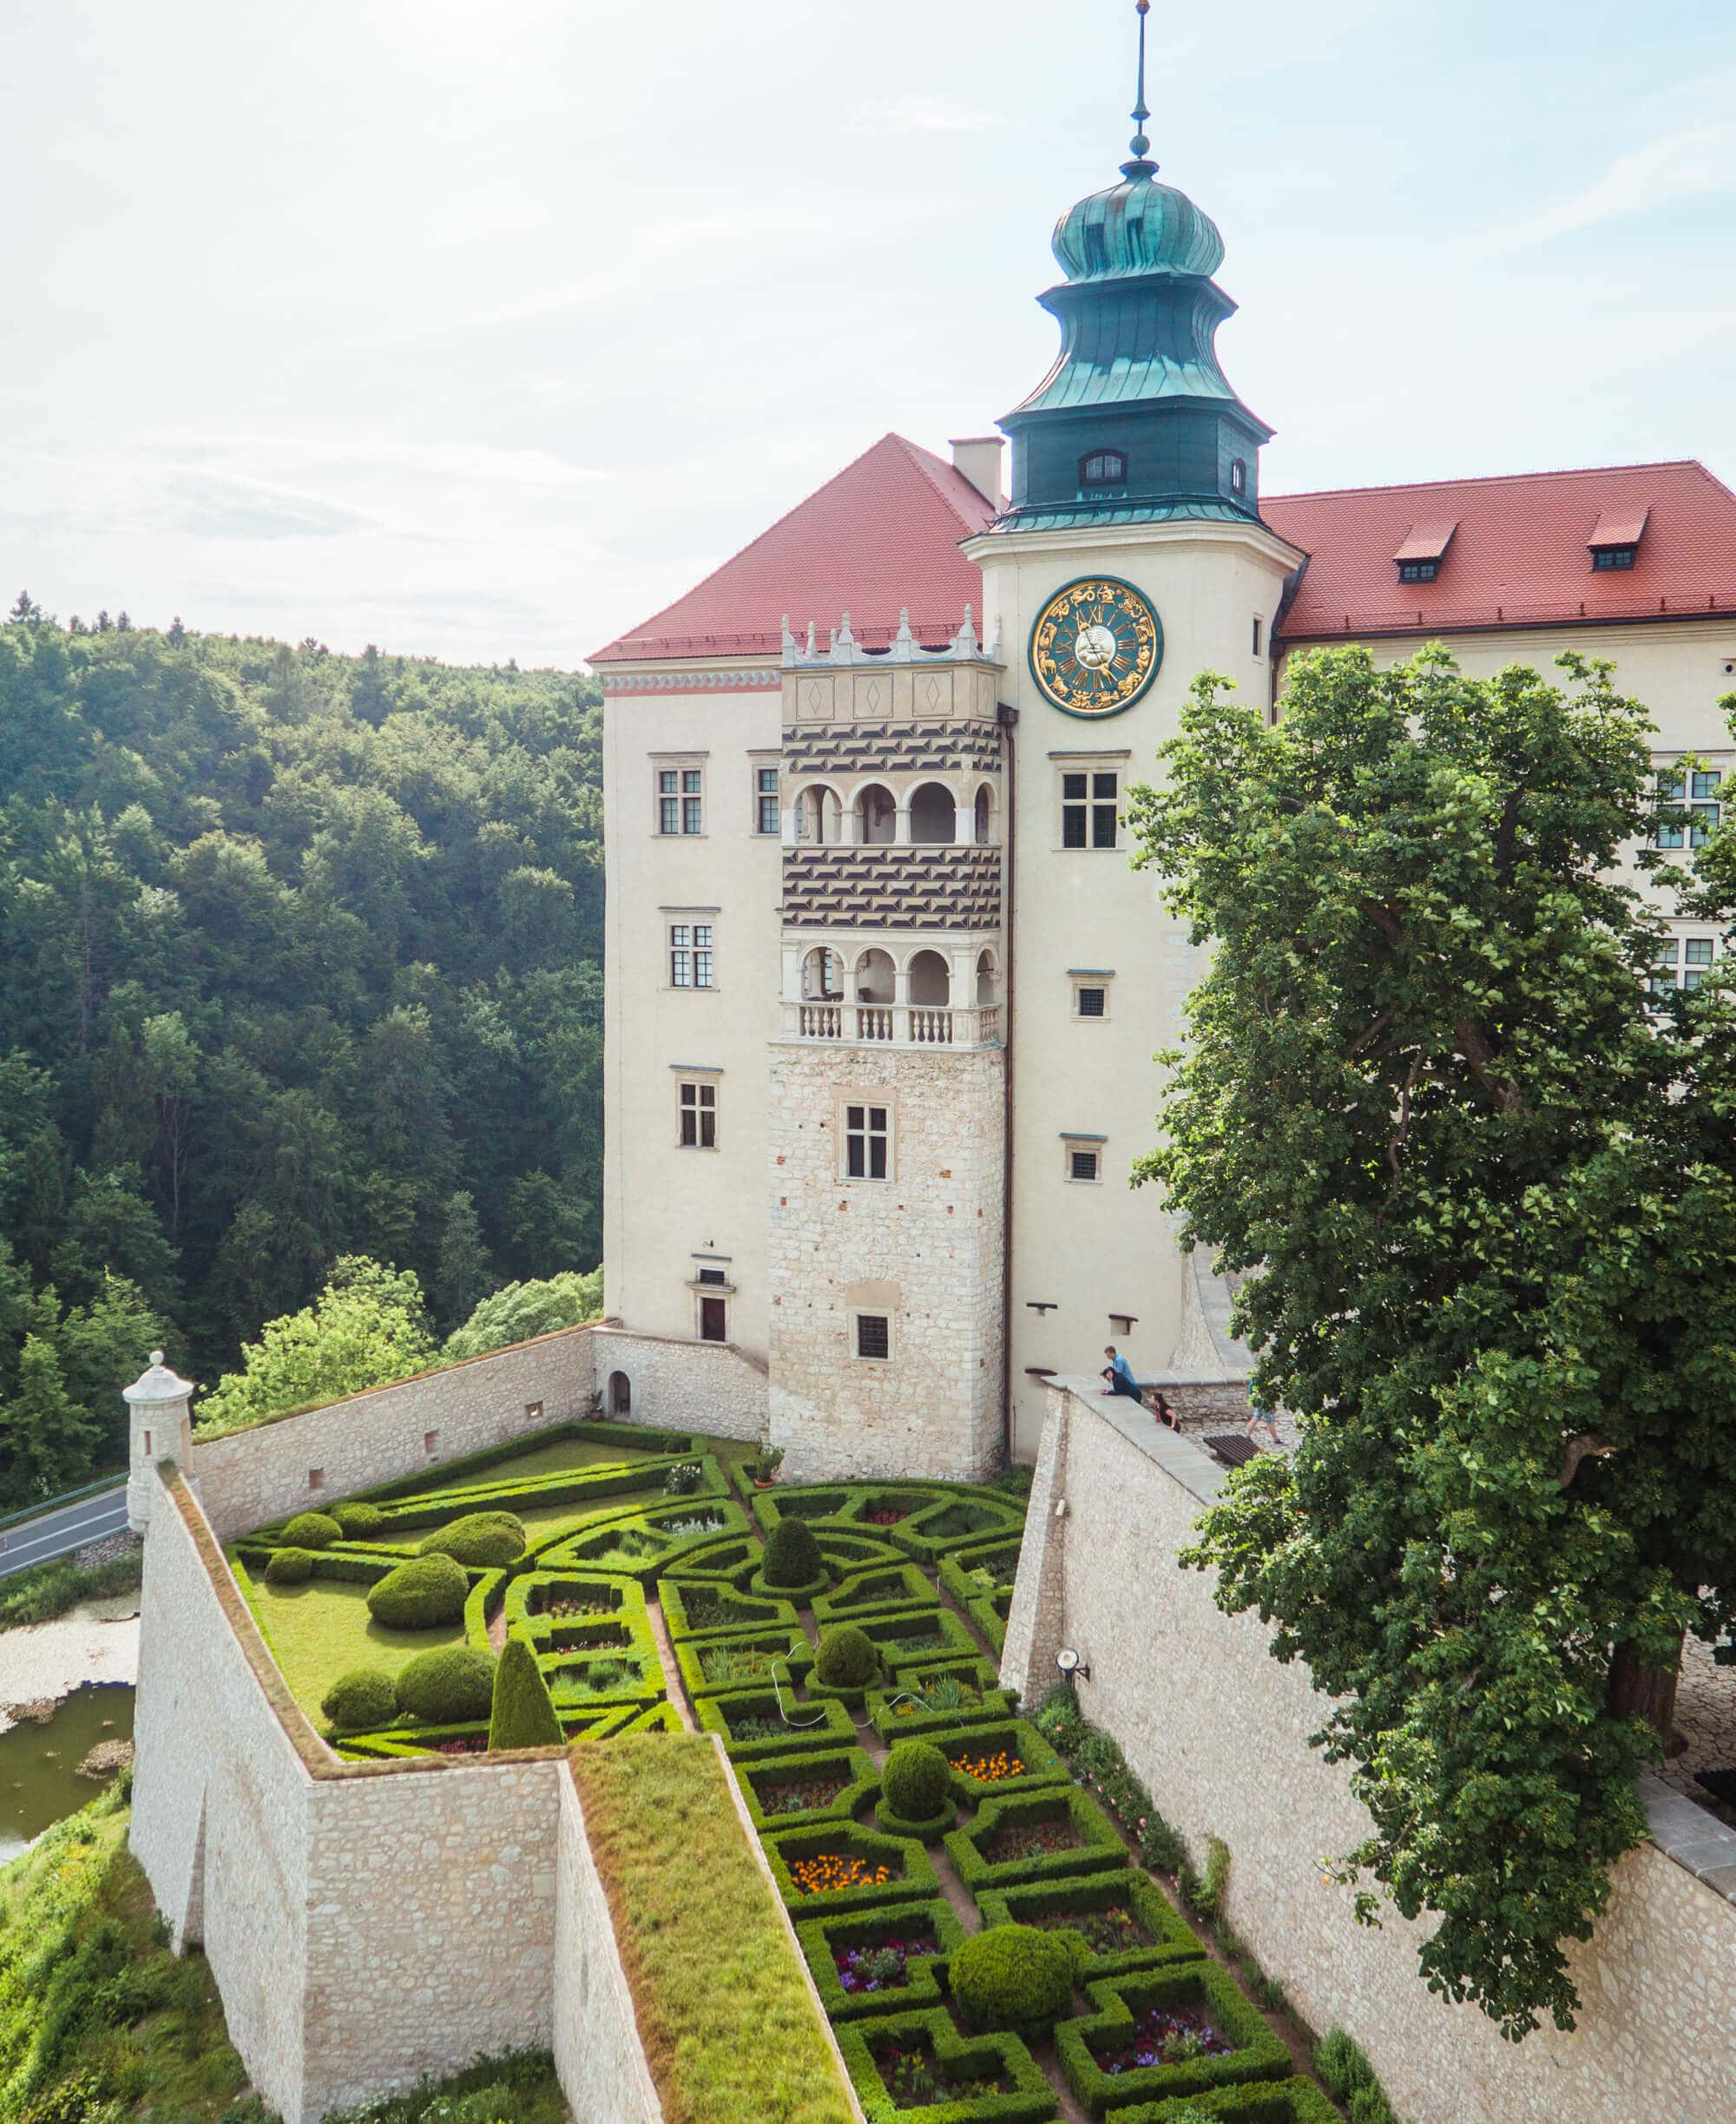 12 of the most beautiful castle in Poland you should add to your bucket list - Pieskowa Skała Castle on the Trail of thee Eagle's Nests